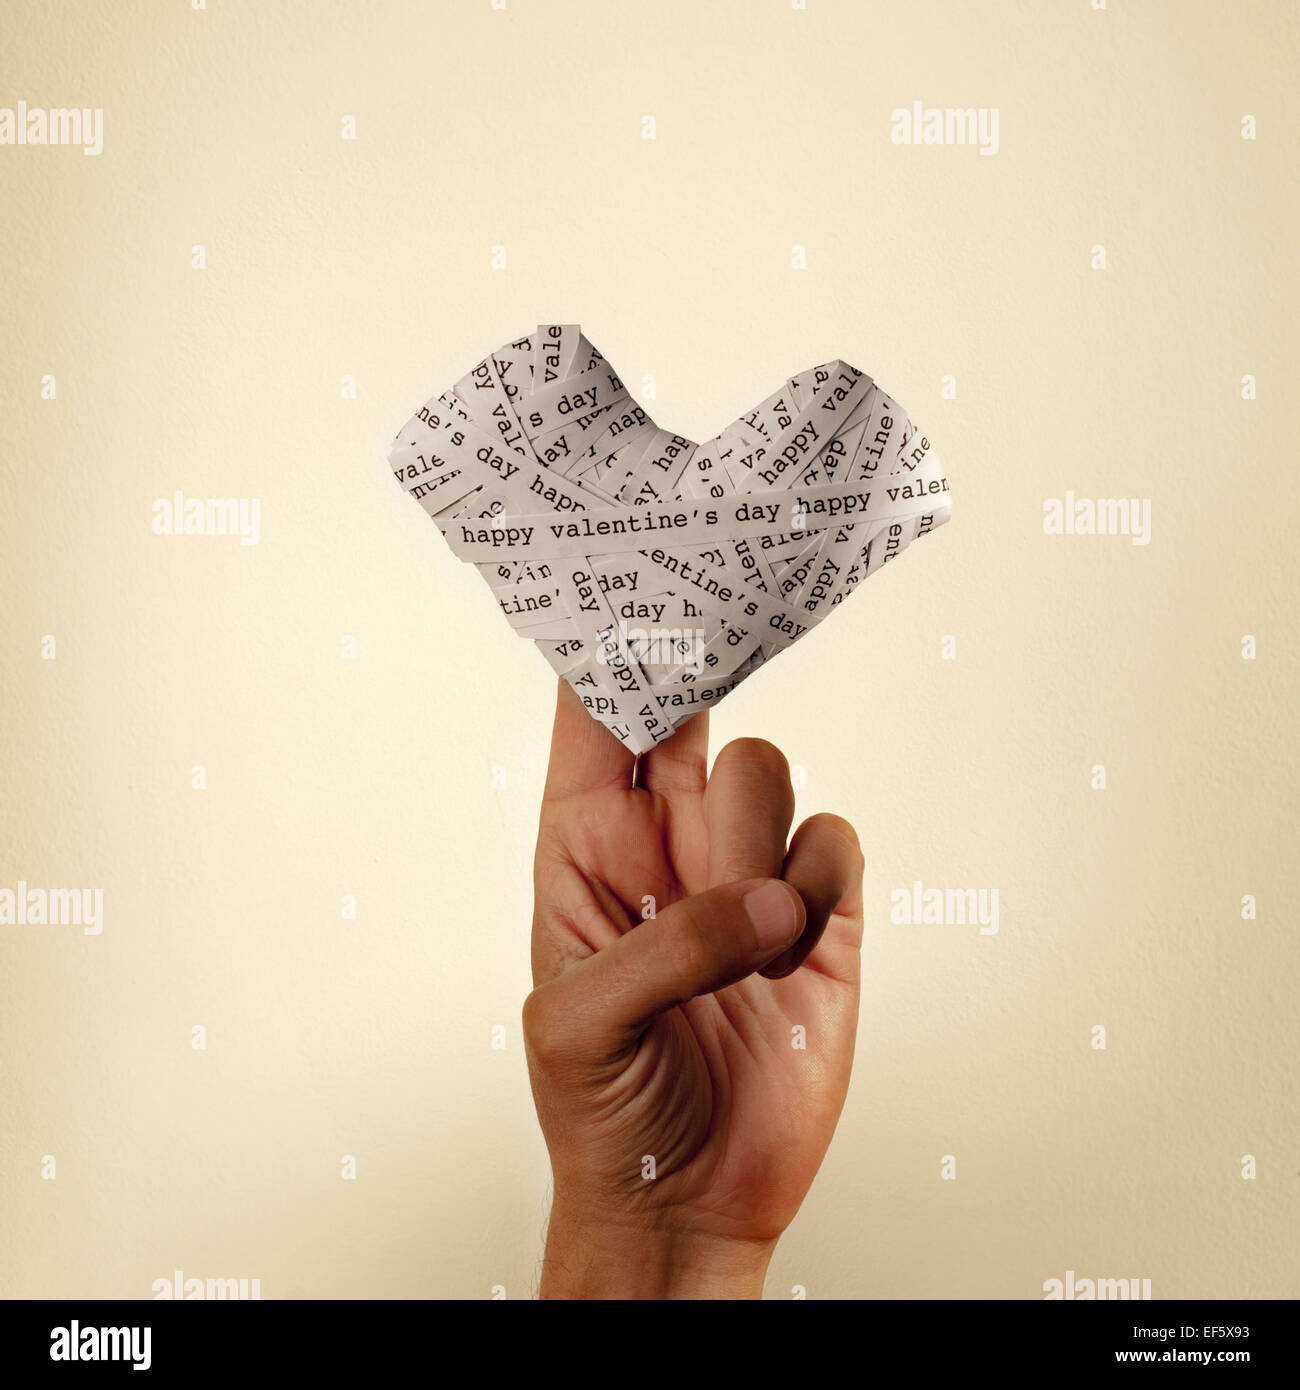 the hand of a young man holding a heart made-up with paper strips with the text happy valentines day, with a retro - Stock Image